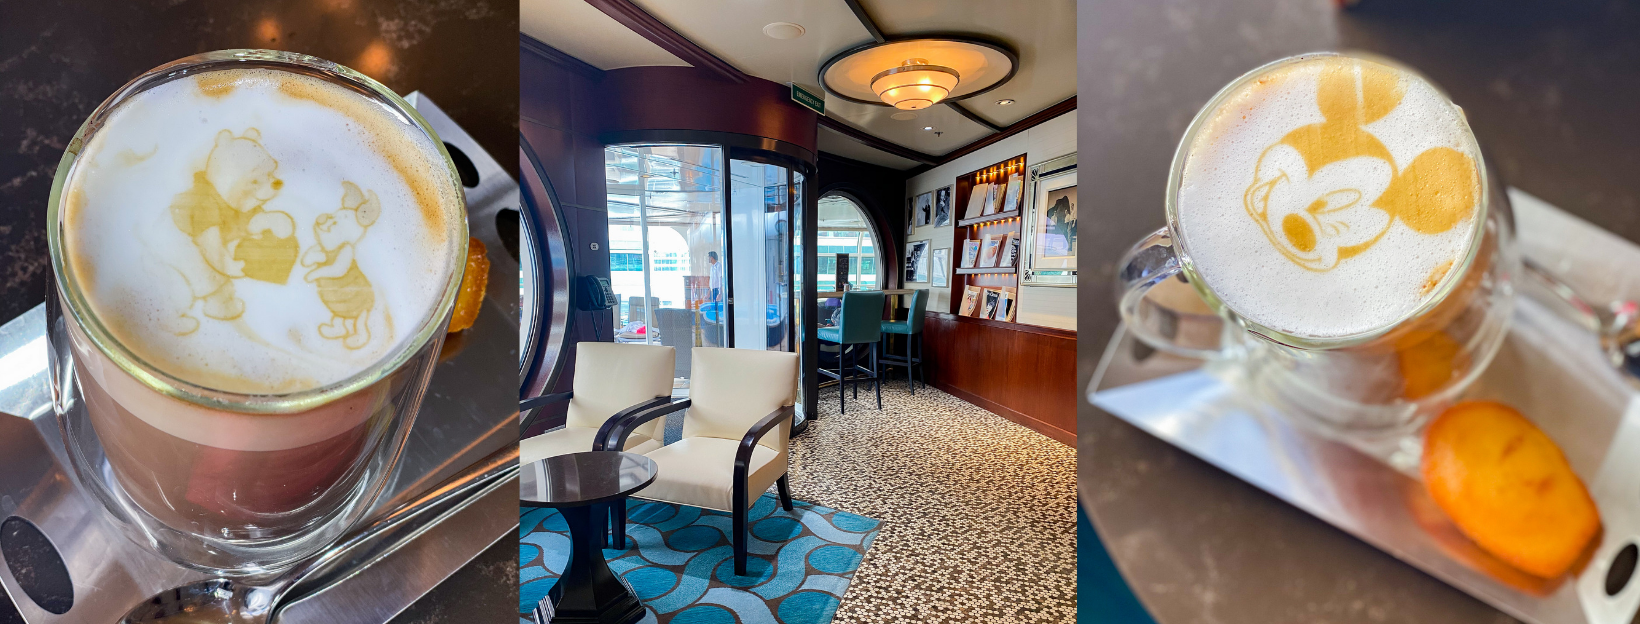 Don't Miss Disney Cruise Tips: these Disney lattes are a required purchase on any ship!